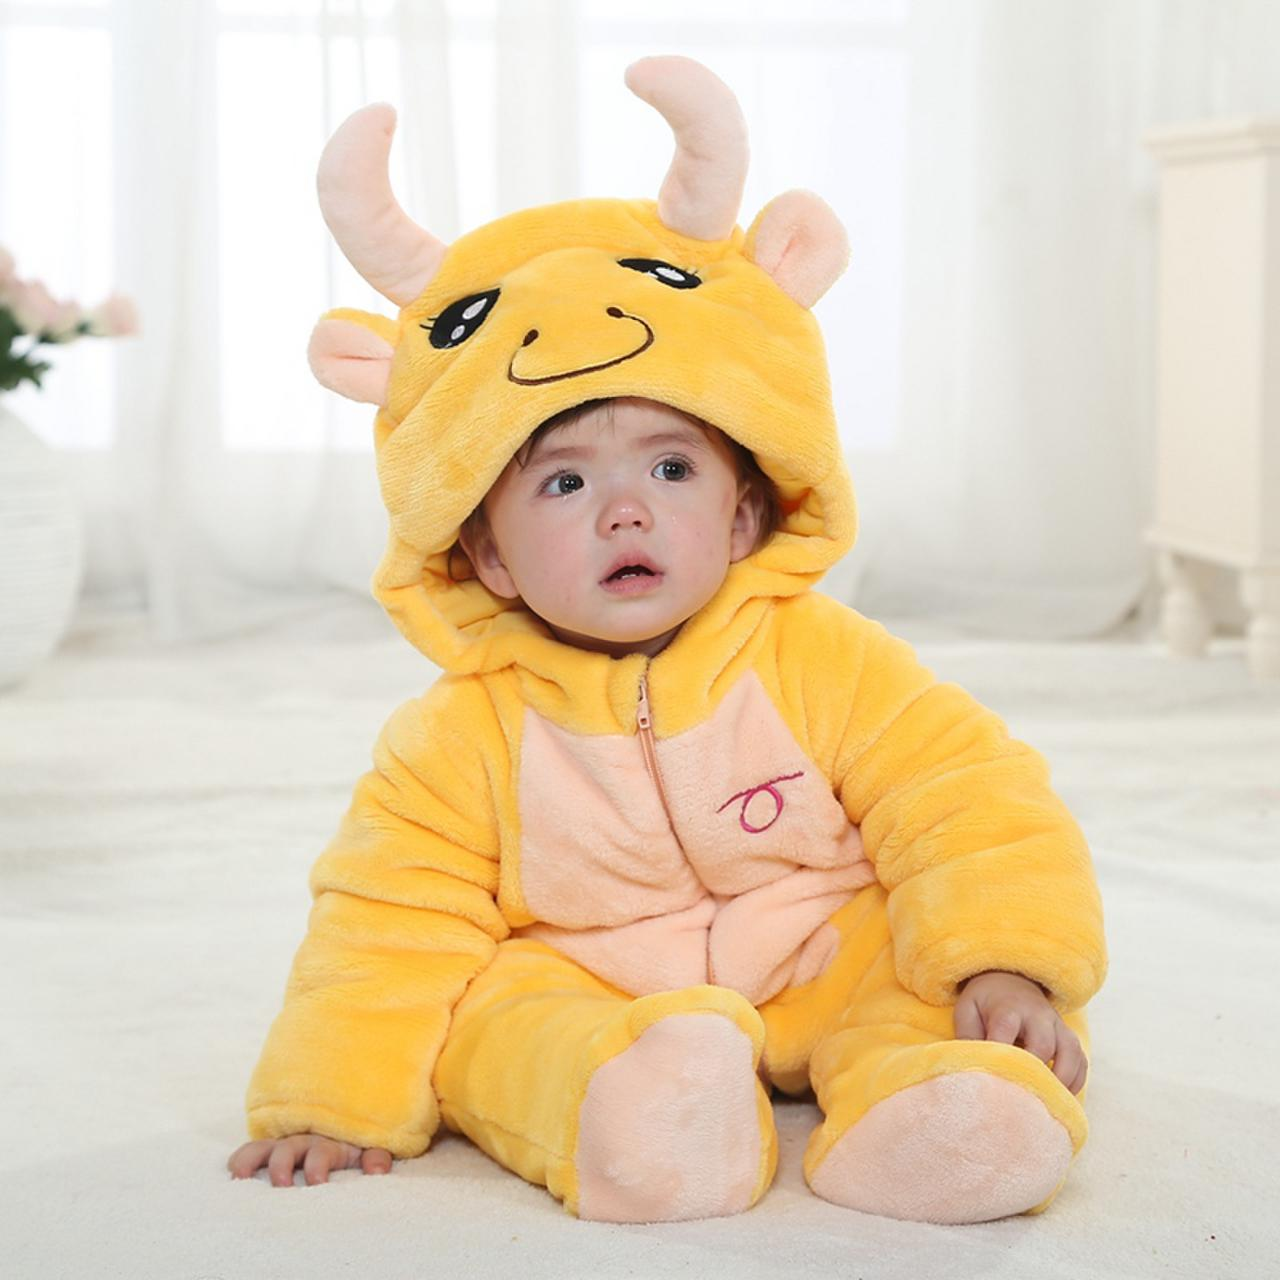 1606cec876c5 Taurus Winter Type Unisex Playsuits Romper Toddlers Jumpsuit Cute ...